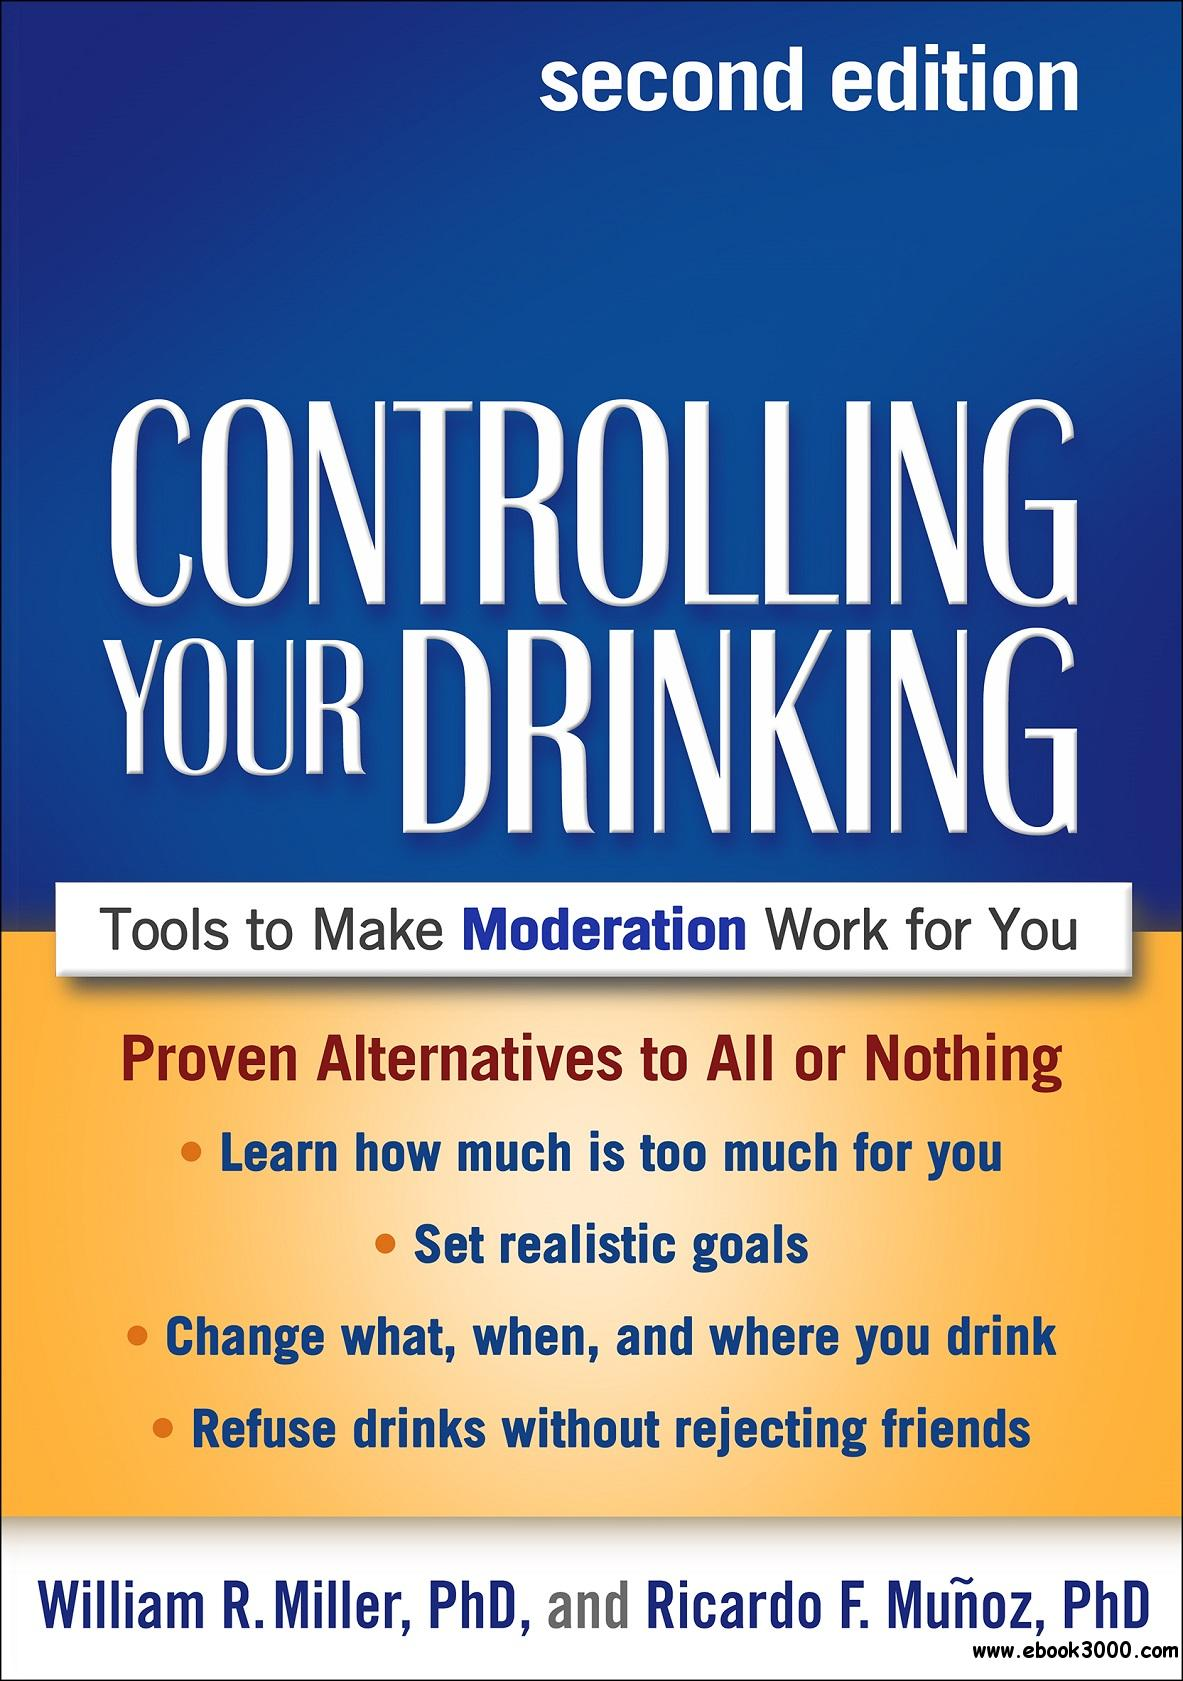 Controlling Your Drinking: Tools to Make Moderation Work for You, 2nd Edition